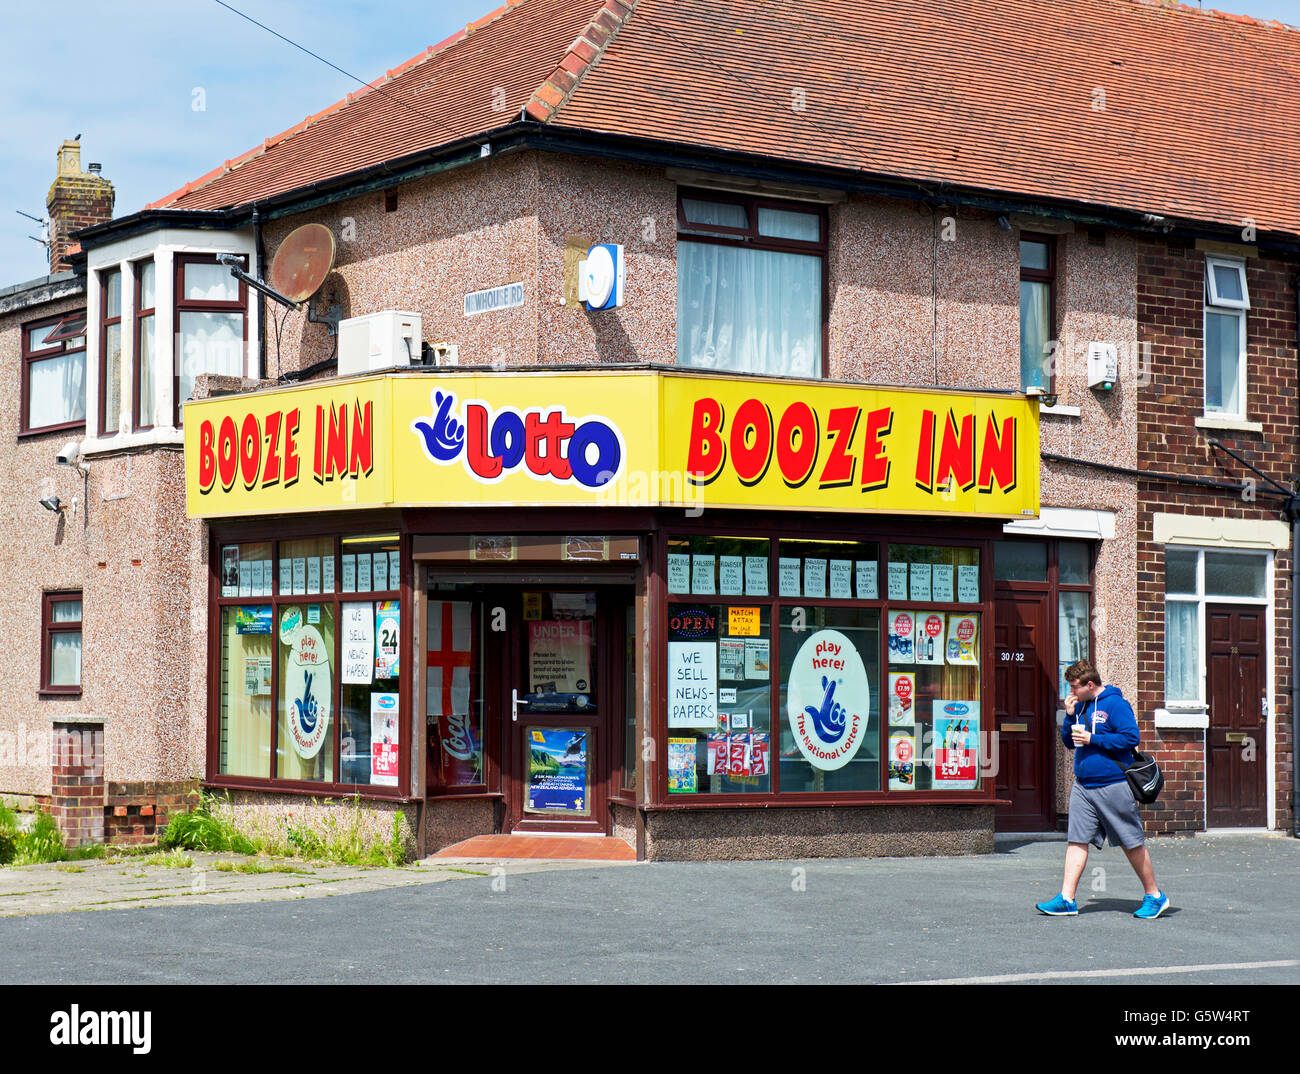 Booze Inn, an off-license and shop in Blackpool, Lancashire, England UK - Stock Image